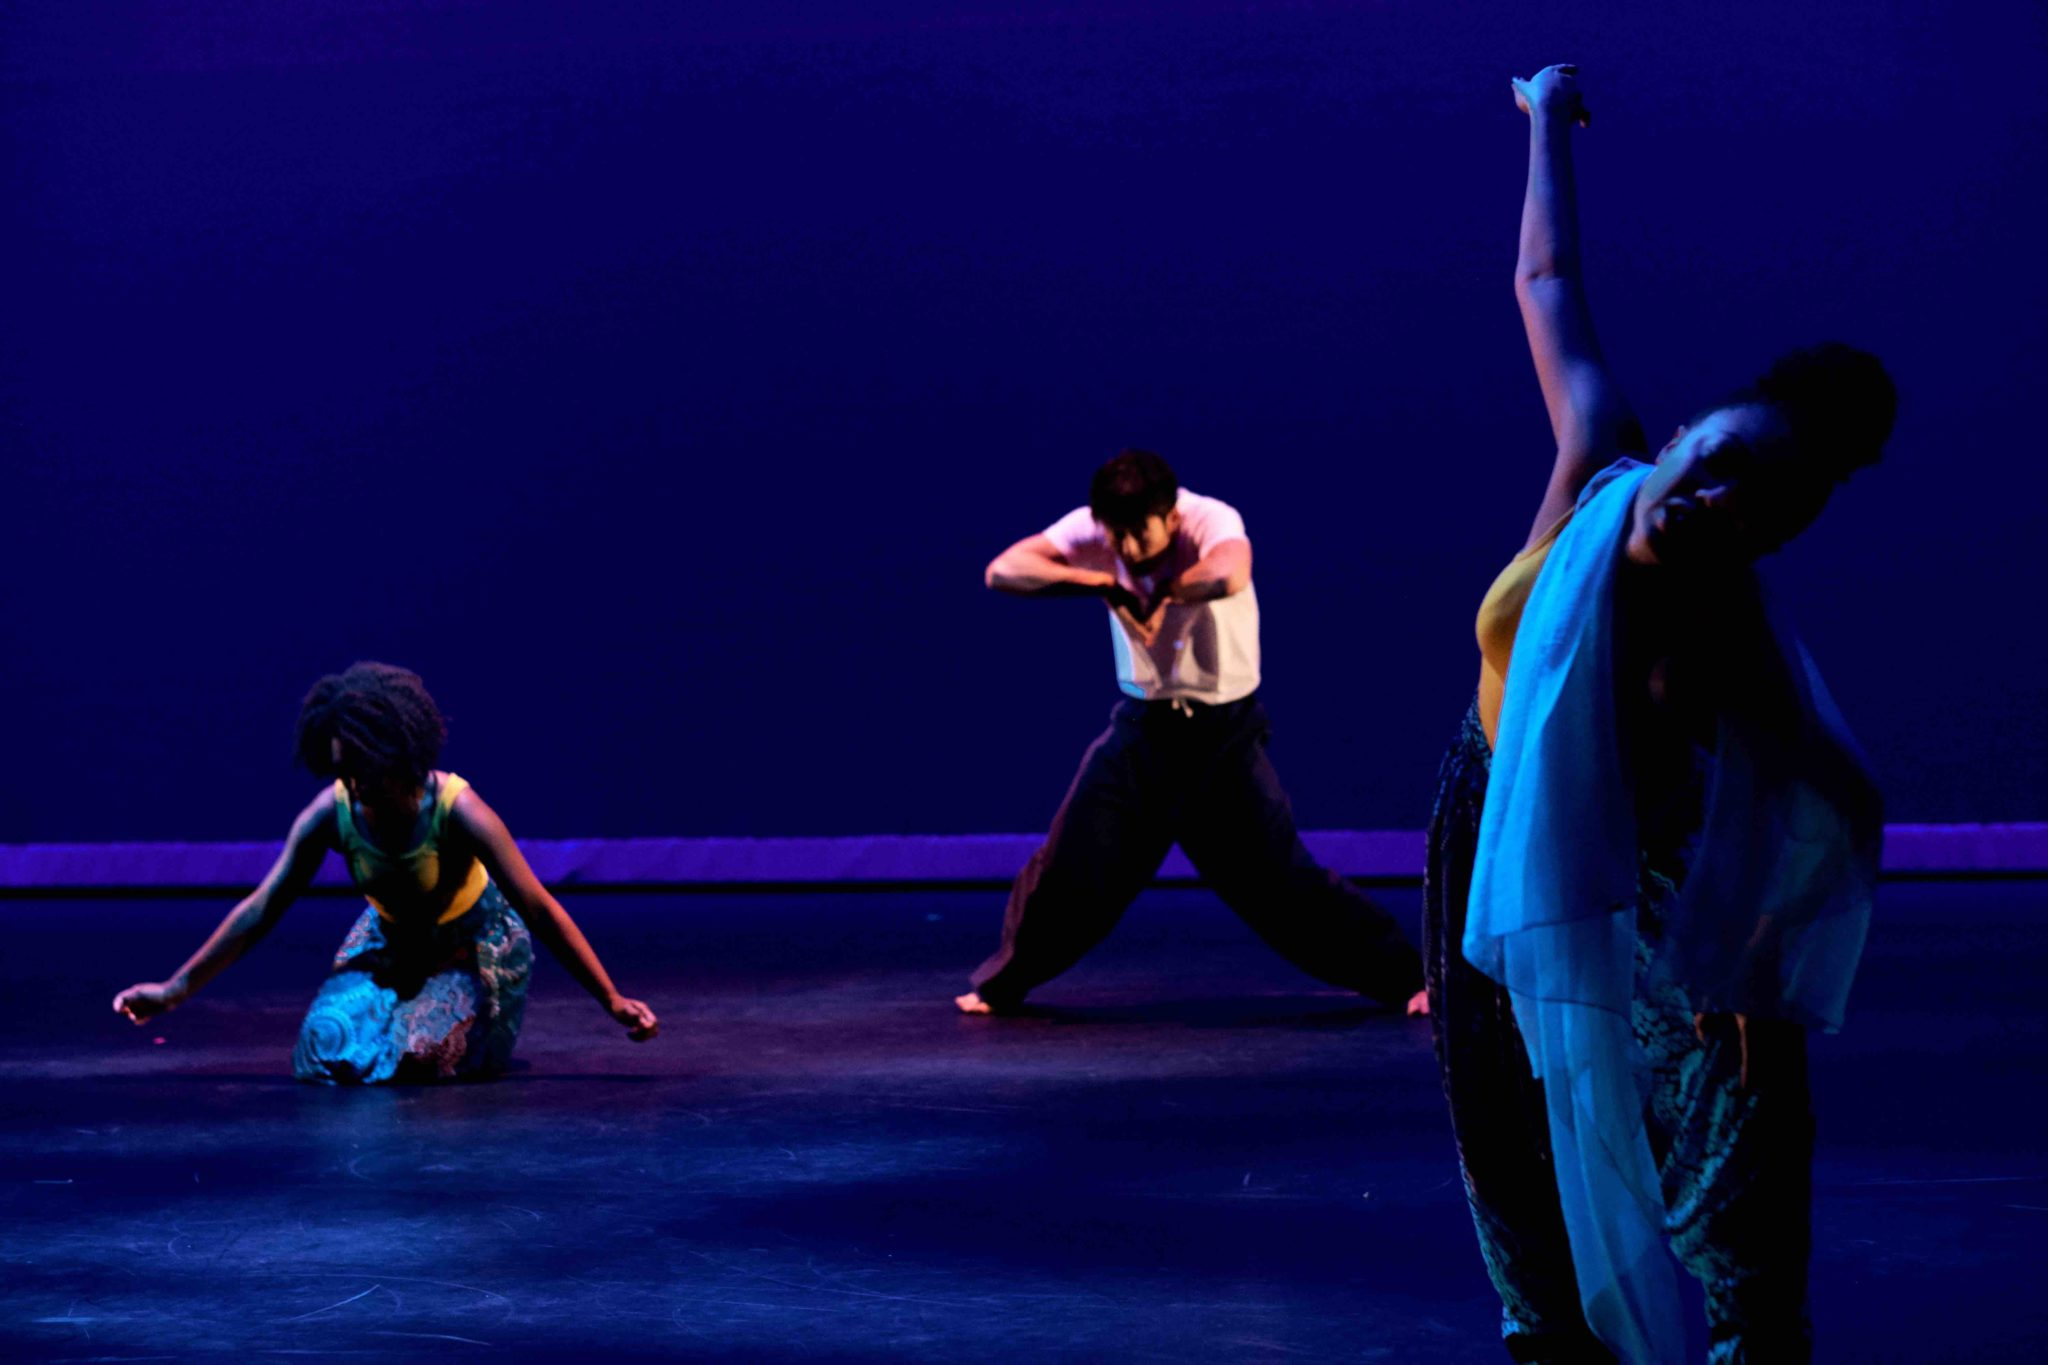 Panoramic Dance Project